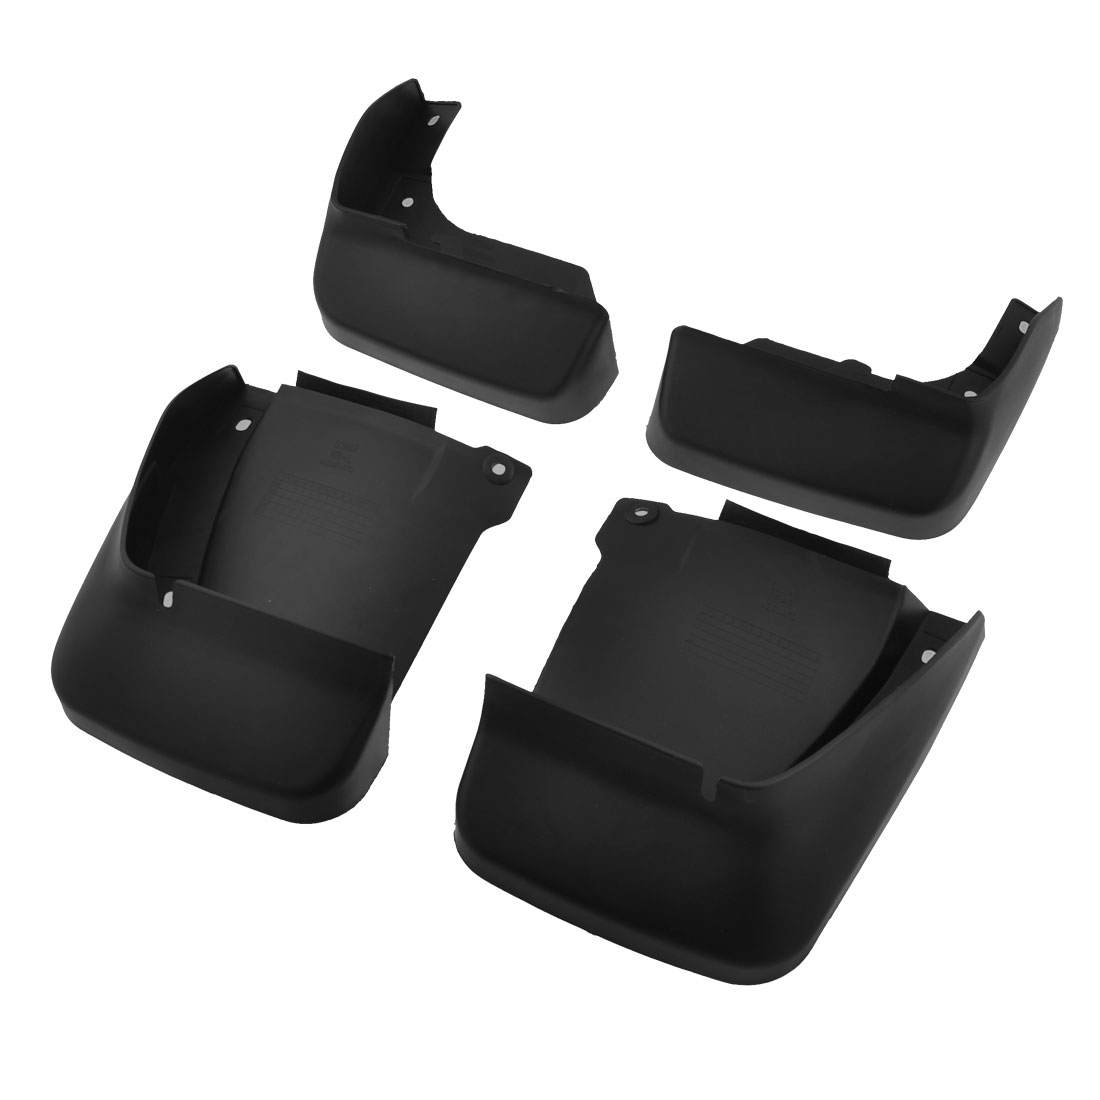 4 in 1 Front Rear Full Plastic Splash Guards Mud Flaps Black Set for Honda